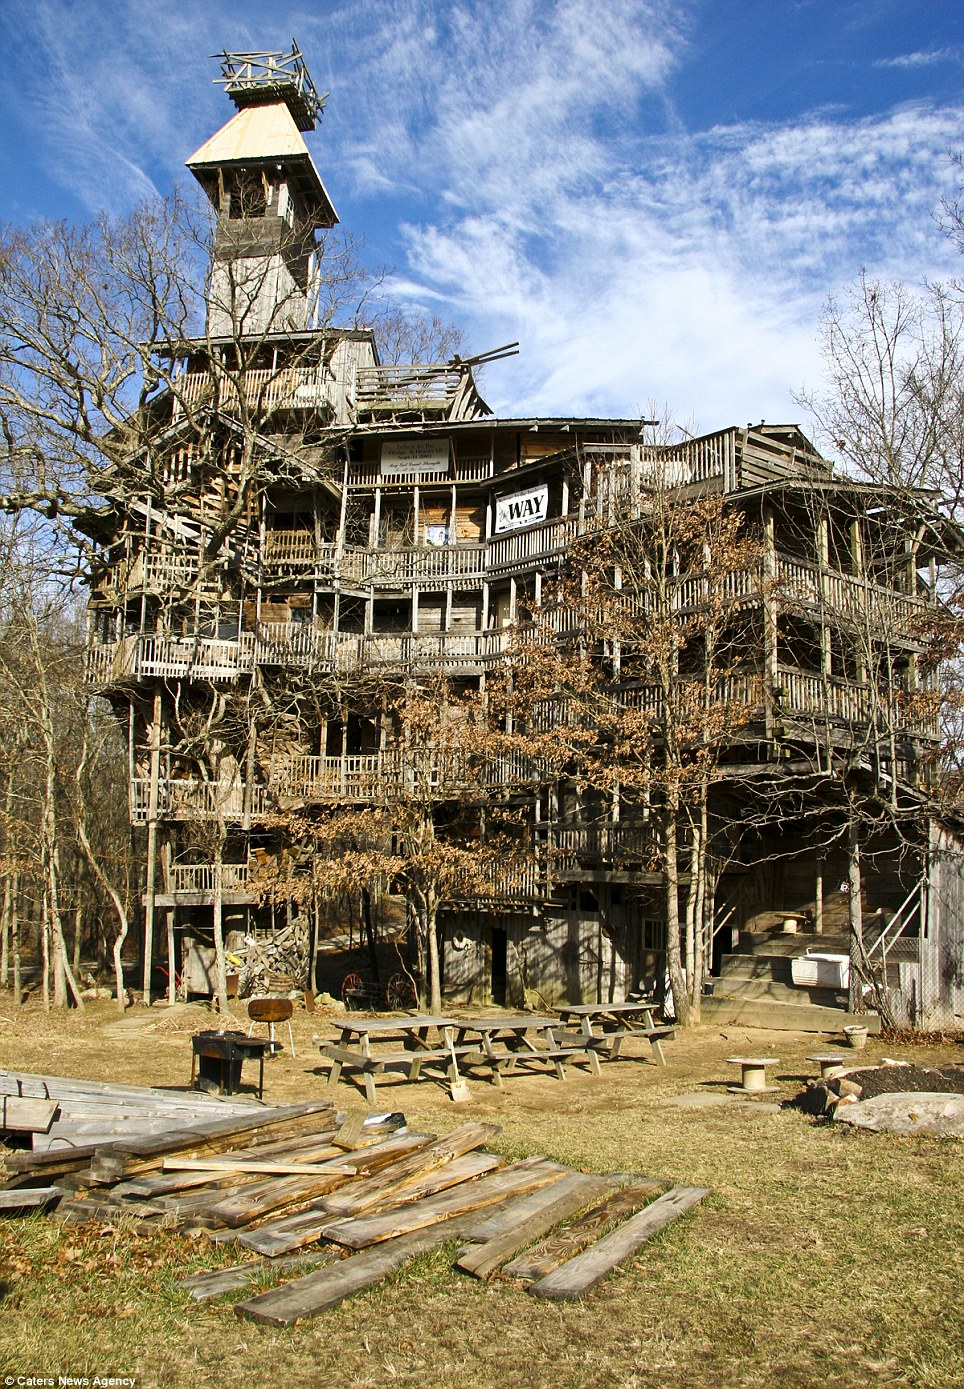 World S Tallest Tree House Inspired By Minister S Divine Vision Shut Down After Being Declared A Fire Hazard Daily Mail Online